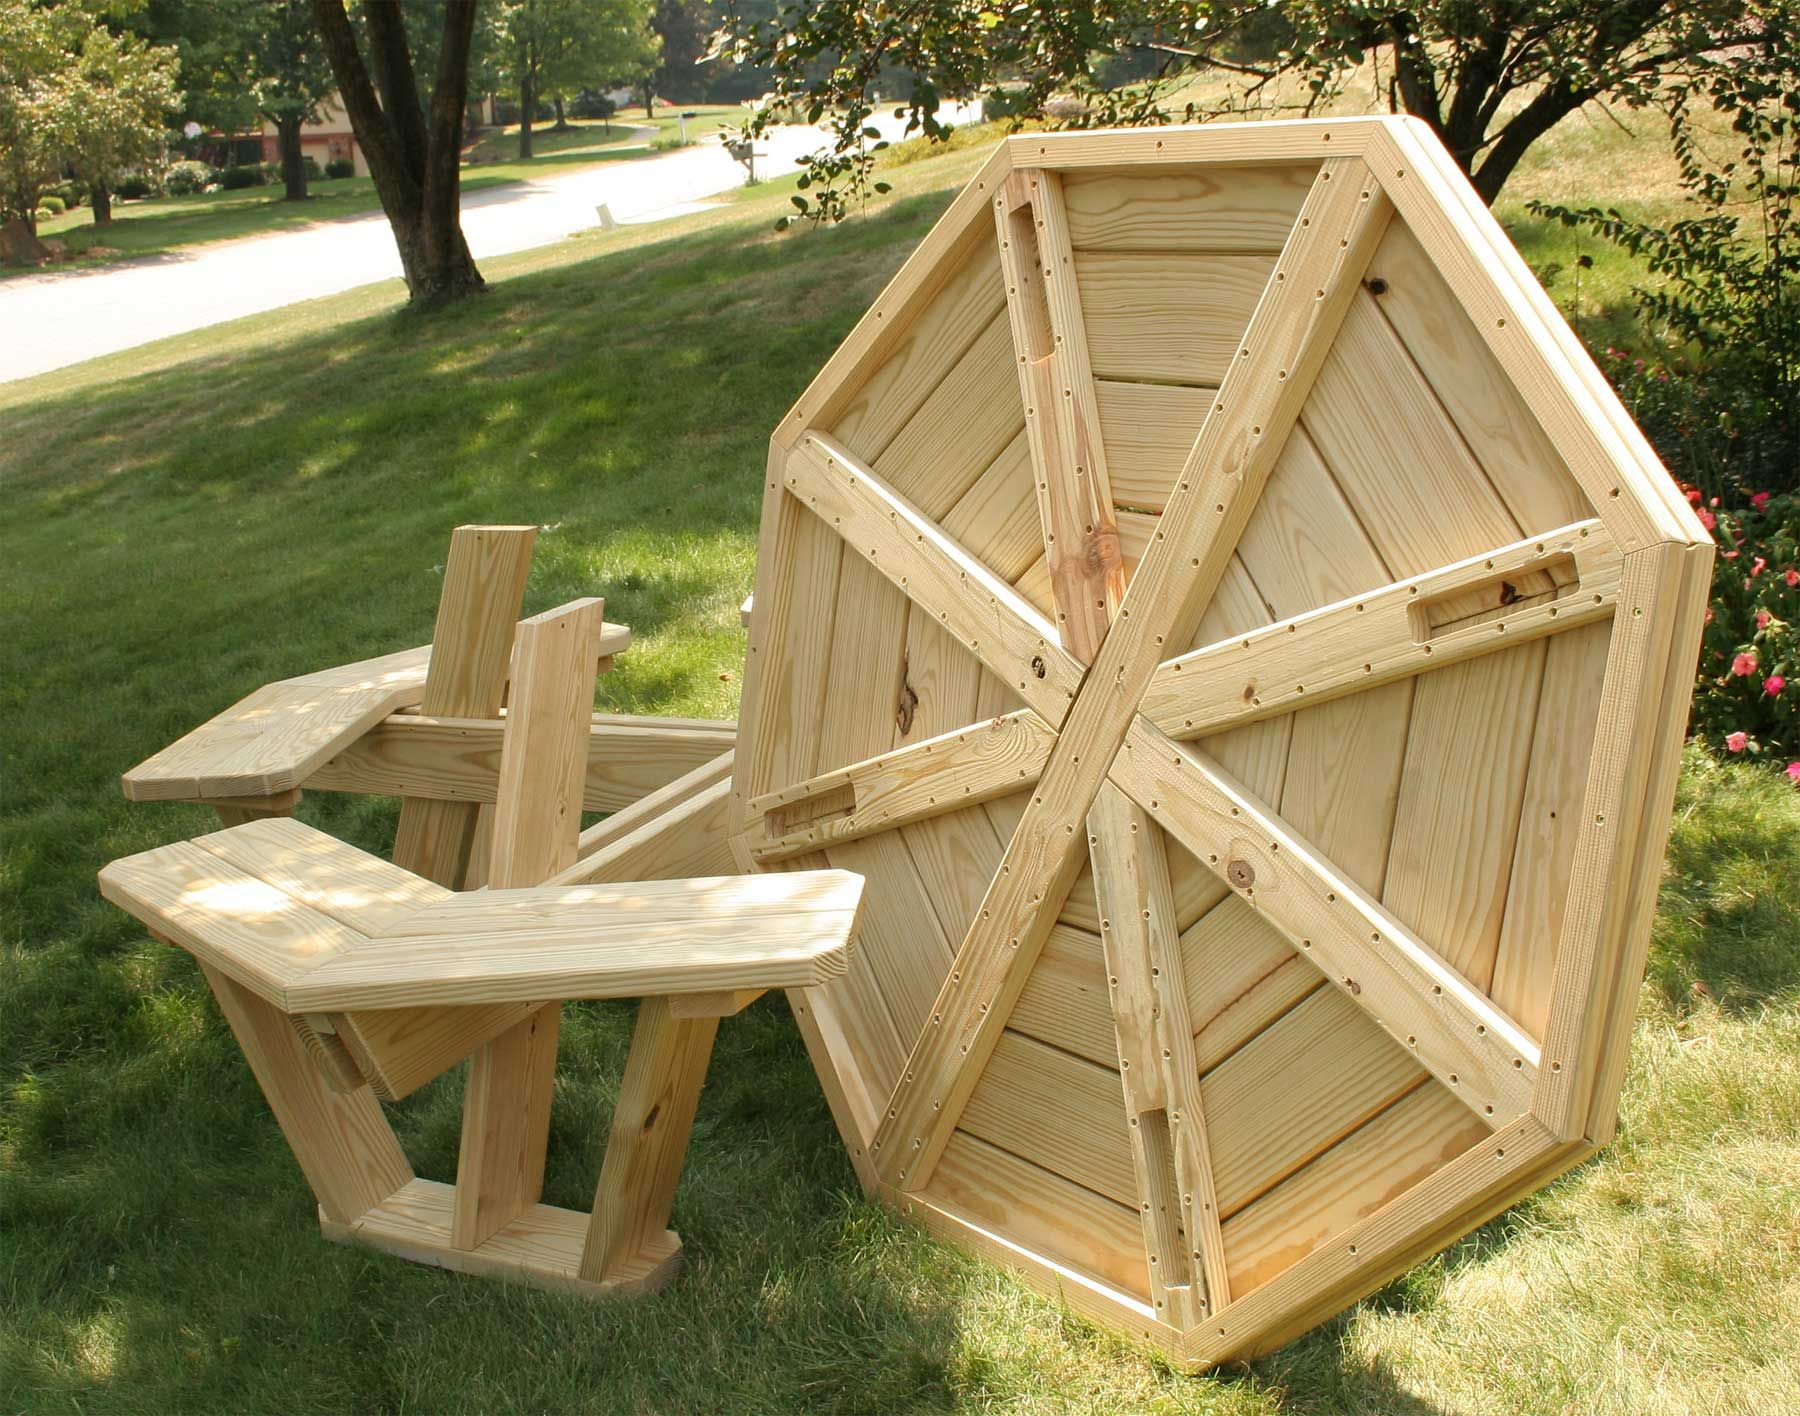 Picnic table round wooden picnic tables portable wooden picnic table - Picnic Table Plans Picnic Table Plans Use These Free Picnic Table Plans To Build A Picnic Table For Your Backyard Lots Of Outdoor Projects You Can Build In